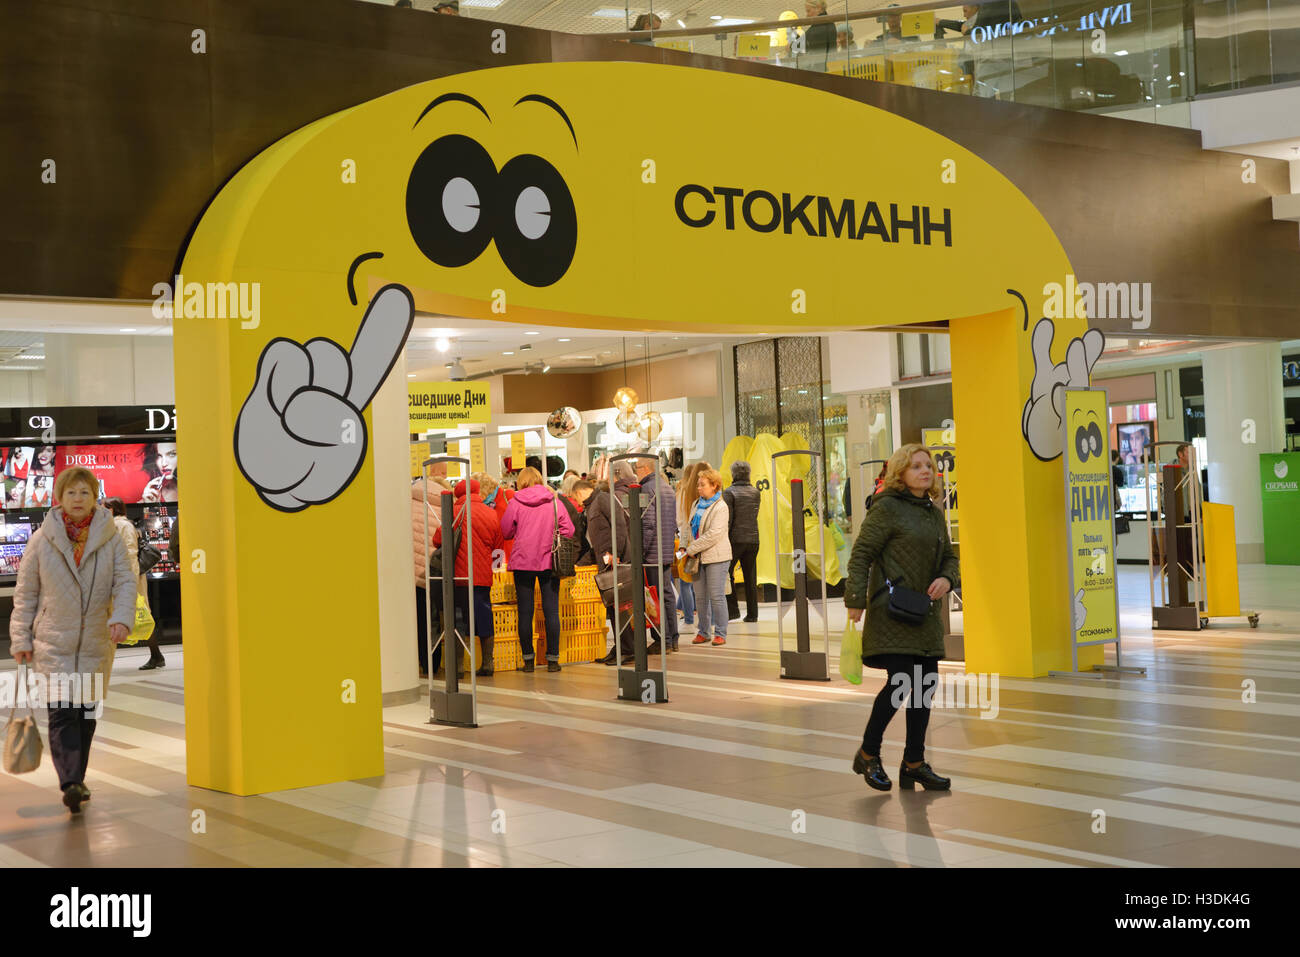 St. Petersburg, Russia, 5th October, 2016. People in the Stockmann department store during Crazy Days. Stockmann Stock Photo